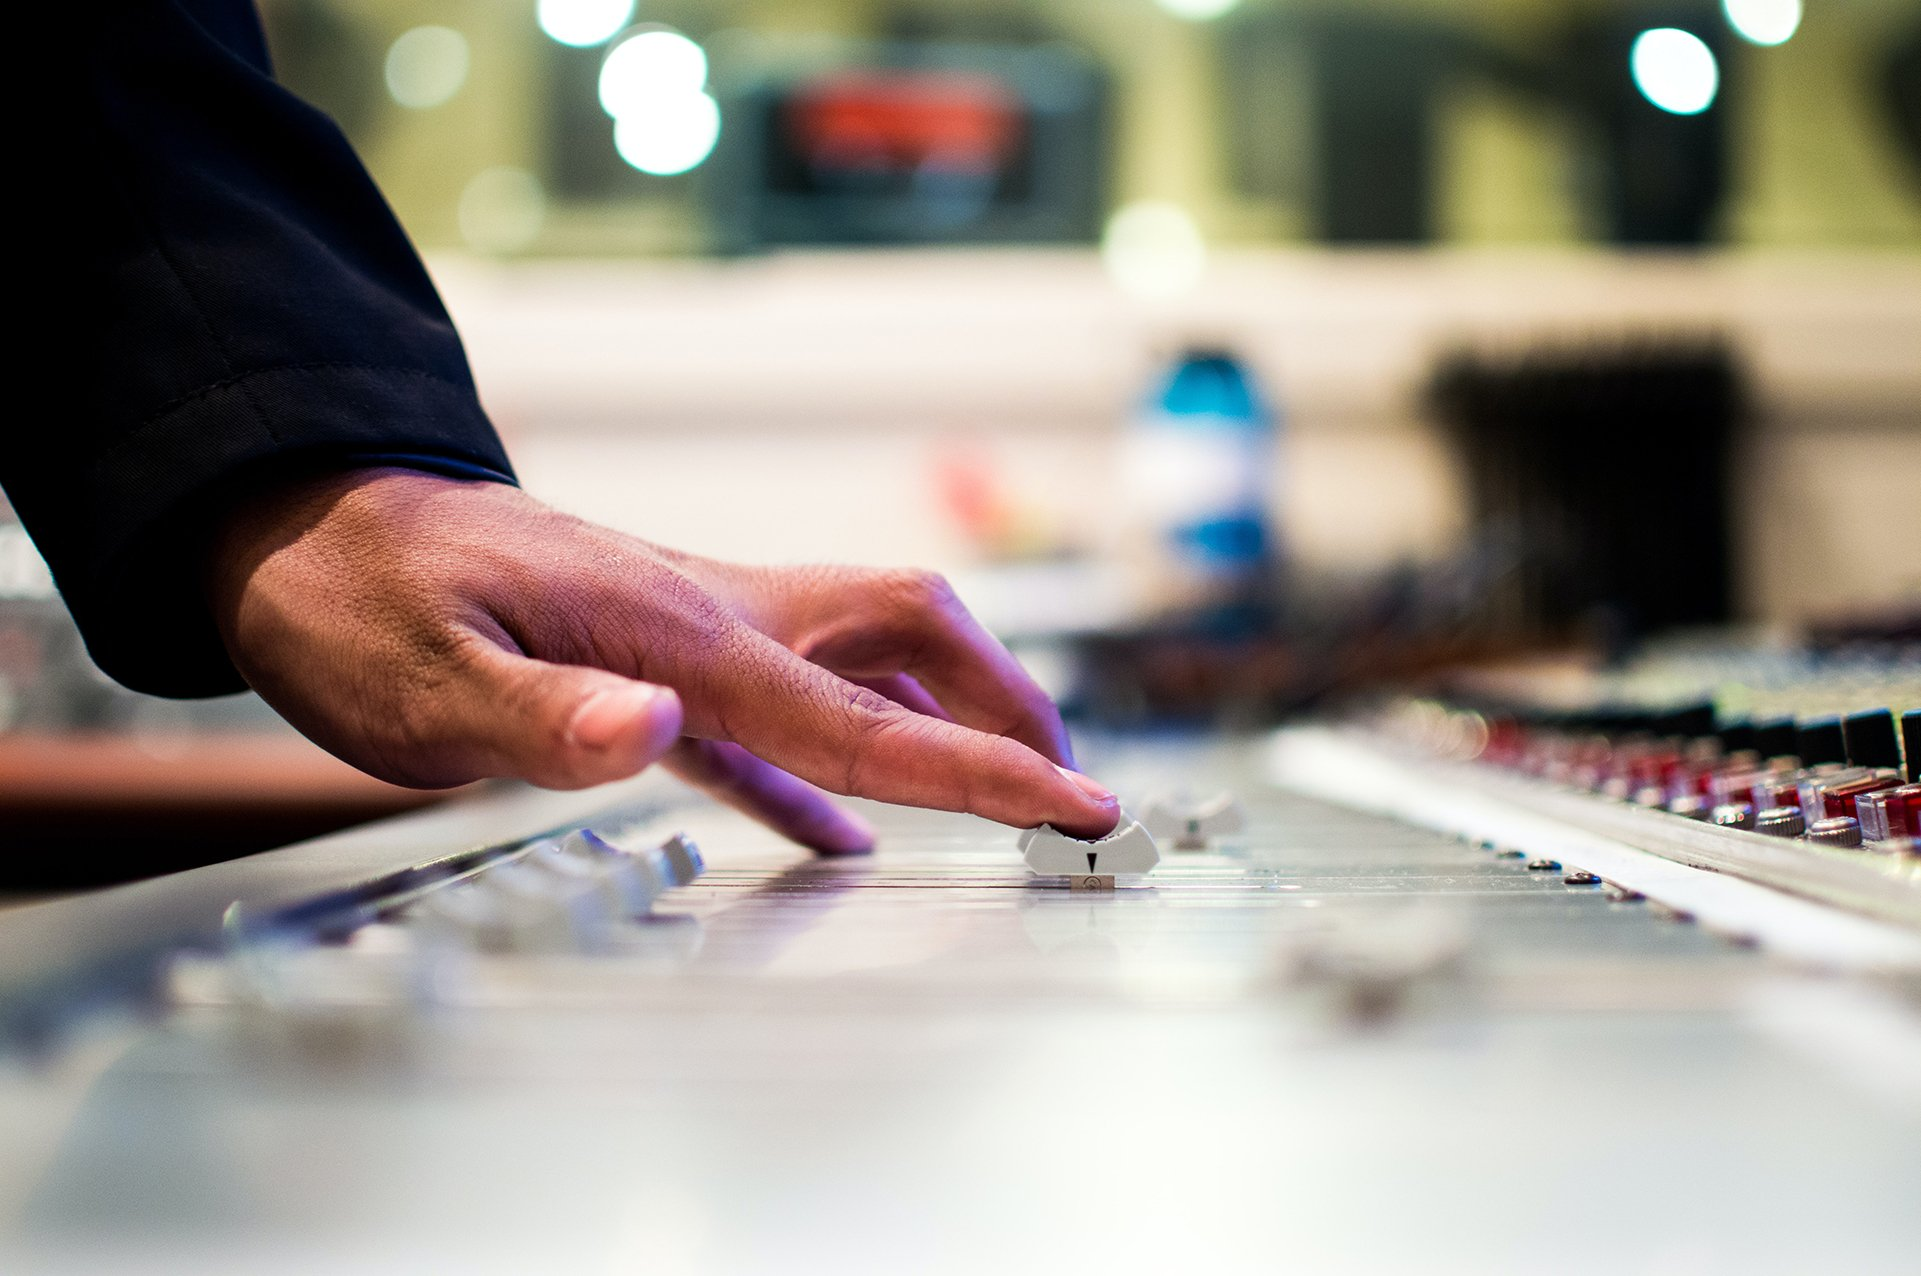 Audio producer's hand on a mixing desk fader